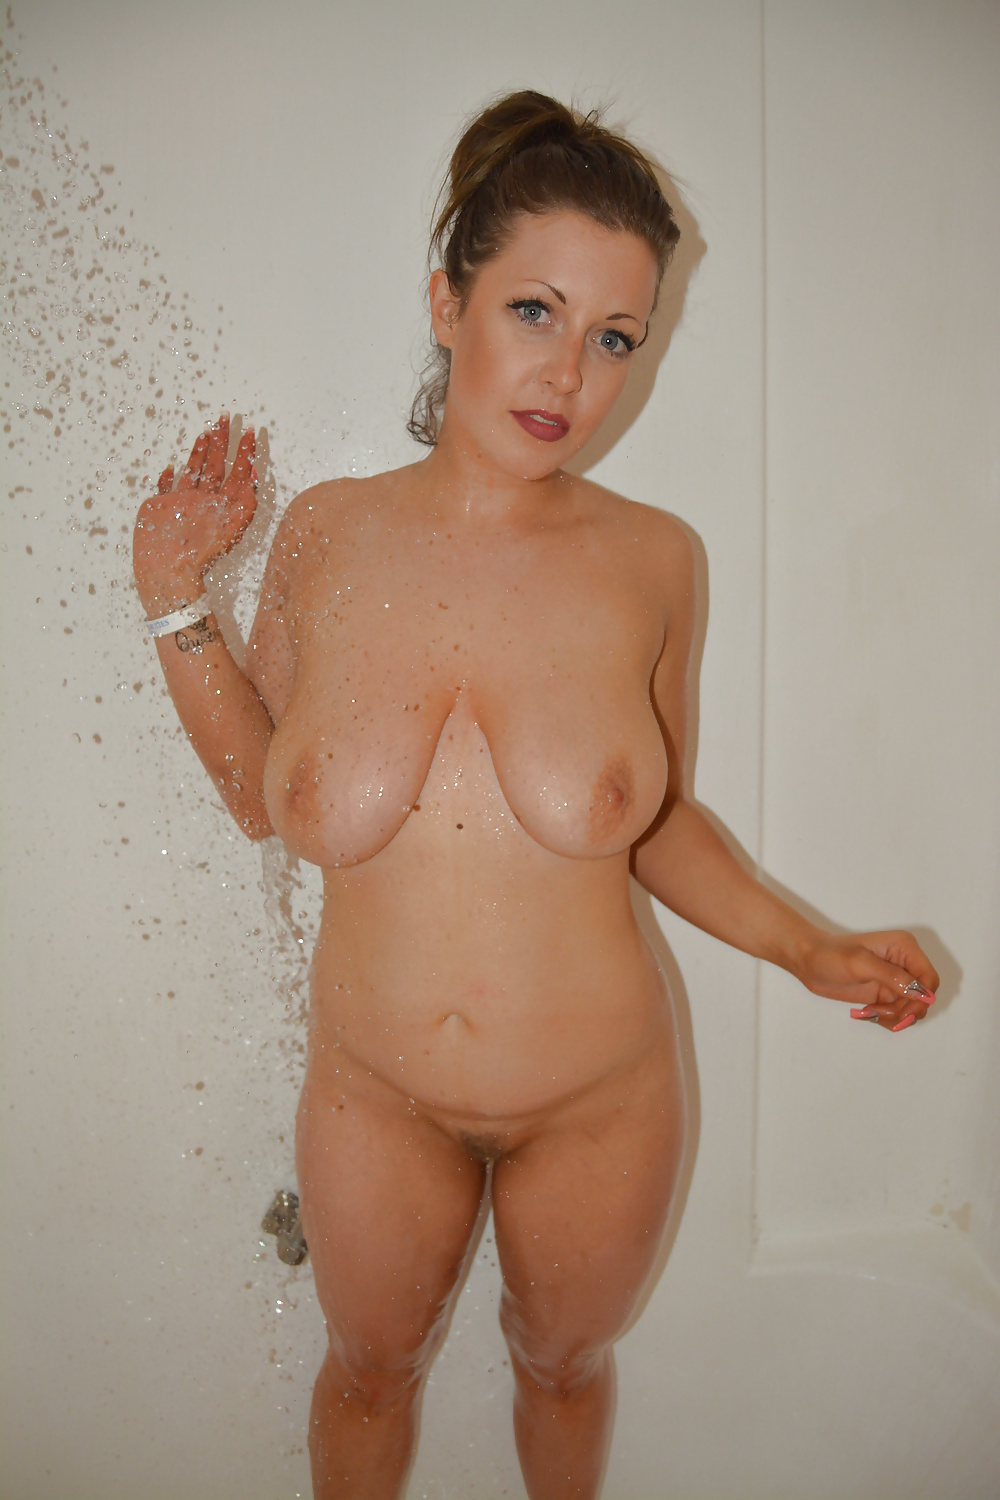 Mature amatuer tit pics there are